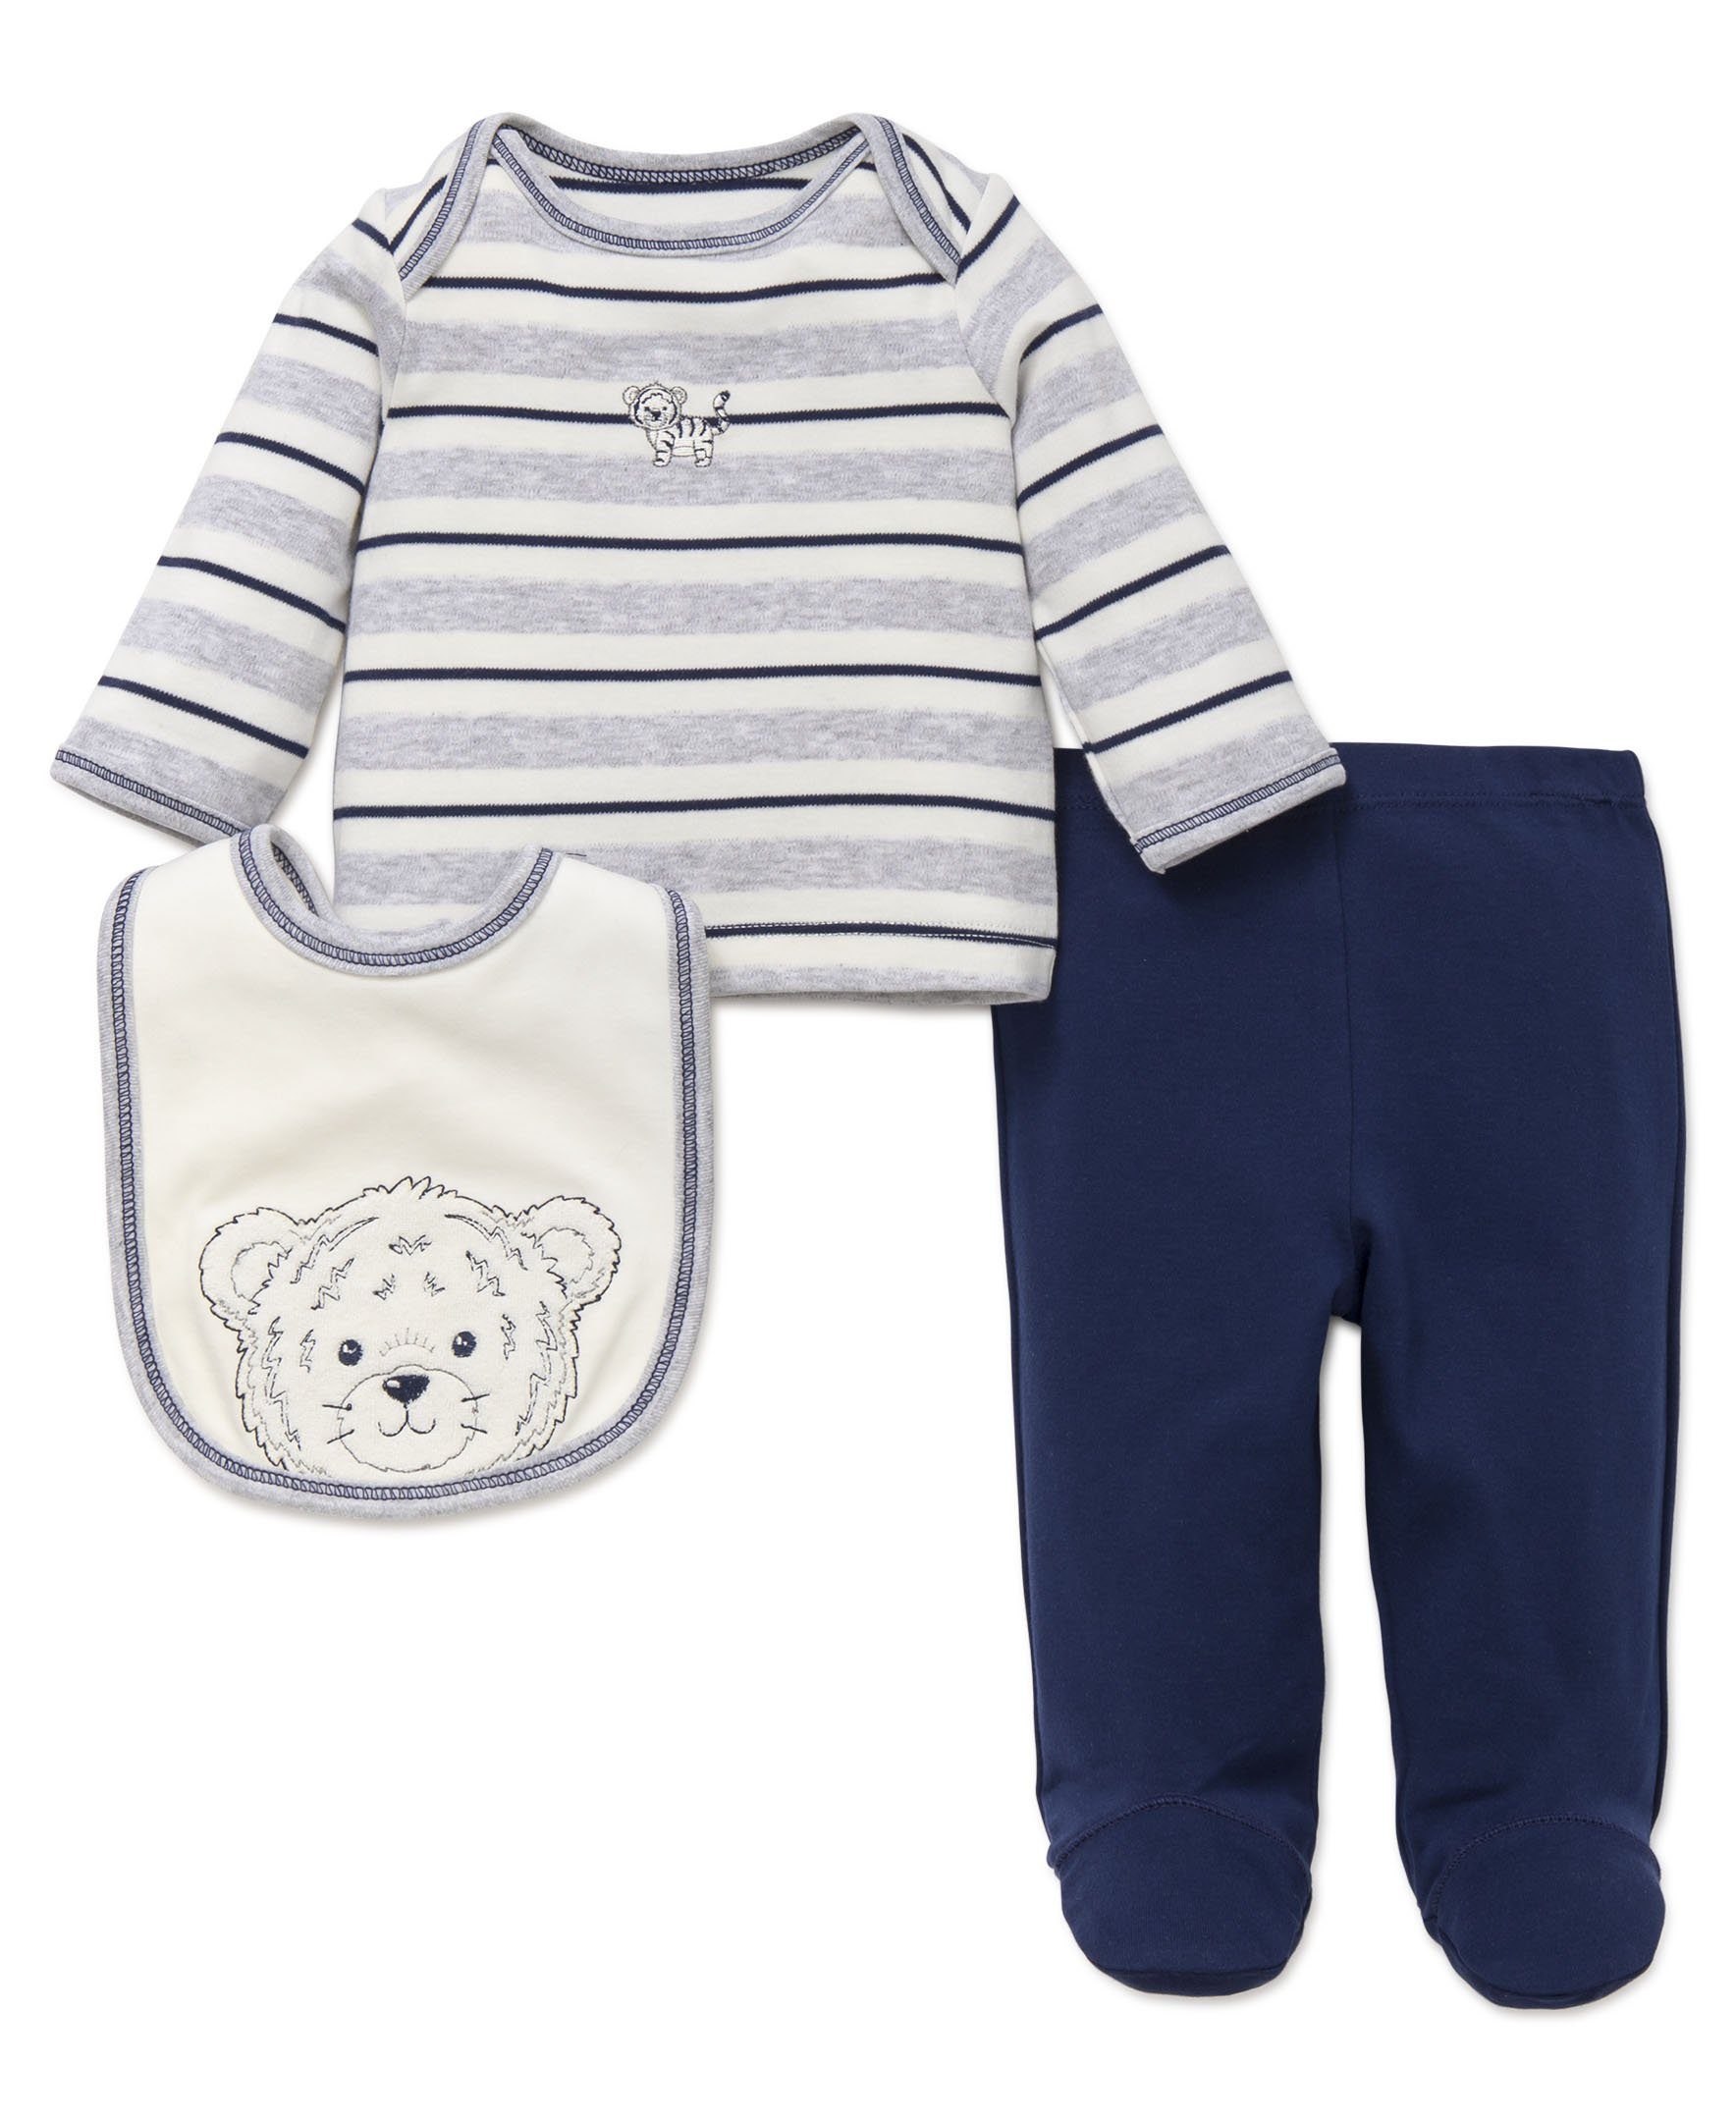 Little Me Boys' 3-Piece Outfit & Bib Set